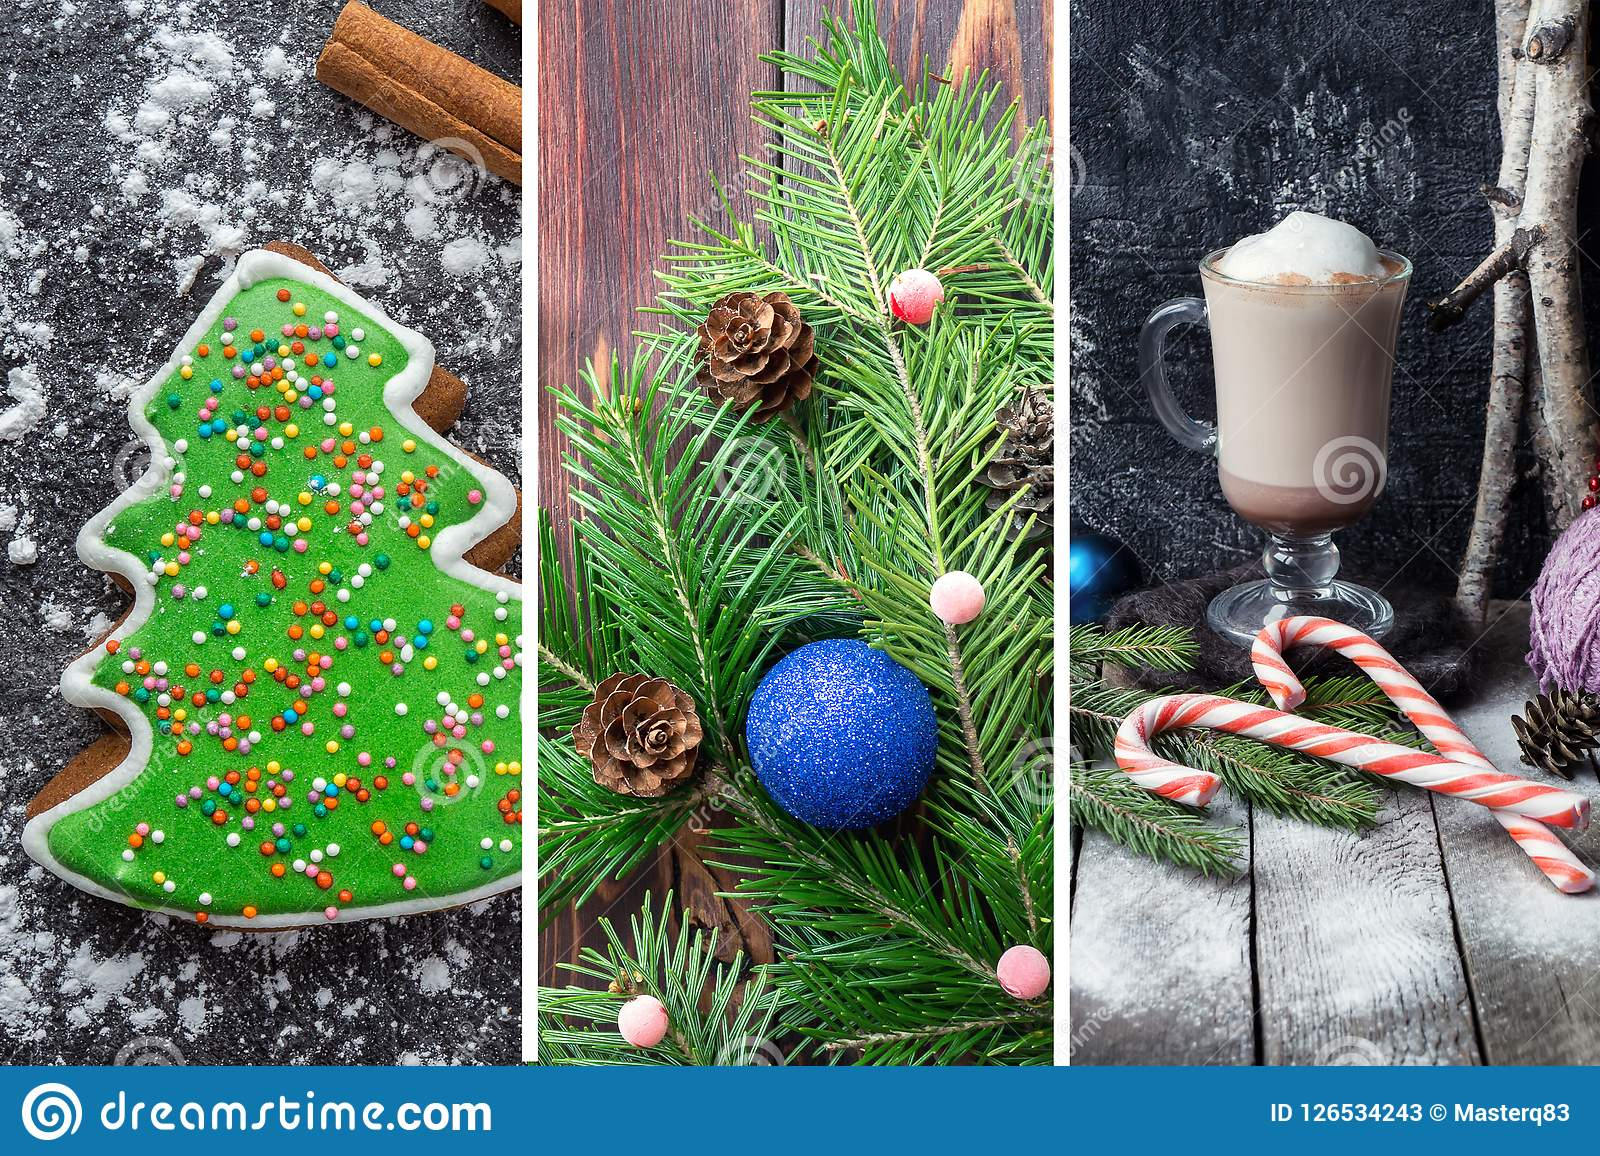 Christmas collage with festive images.